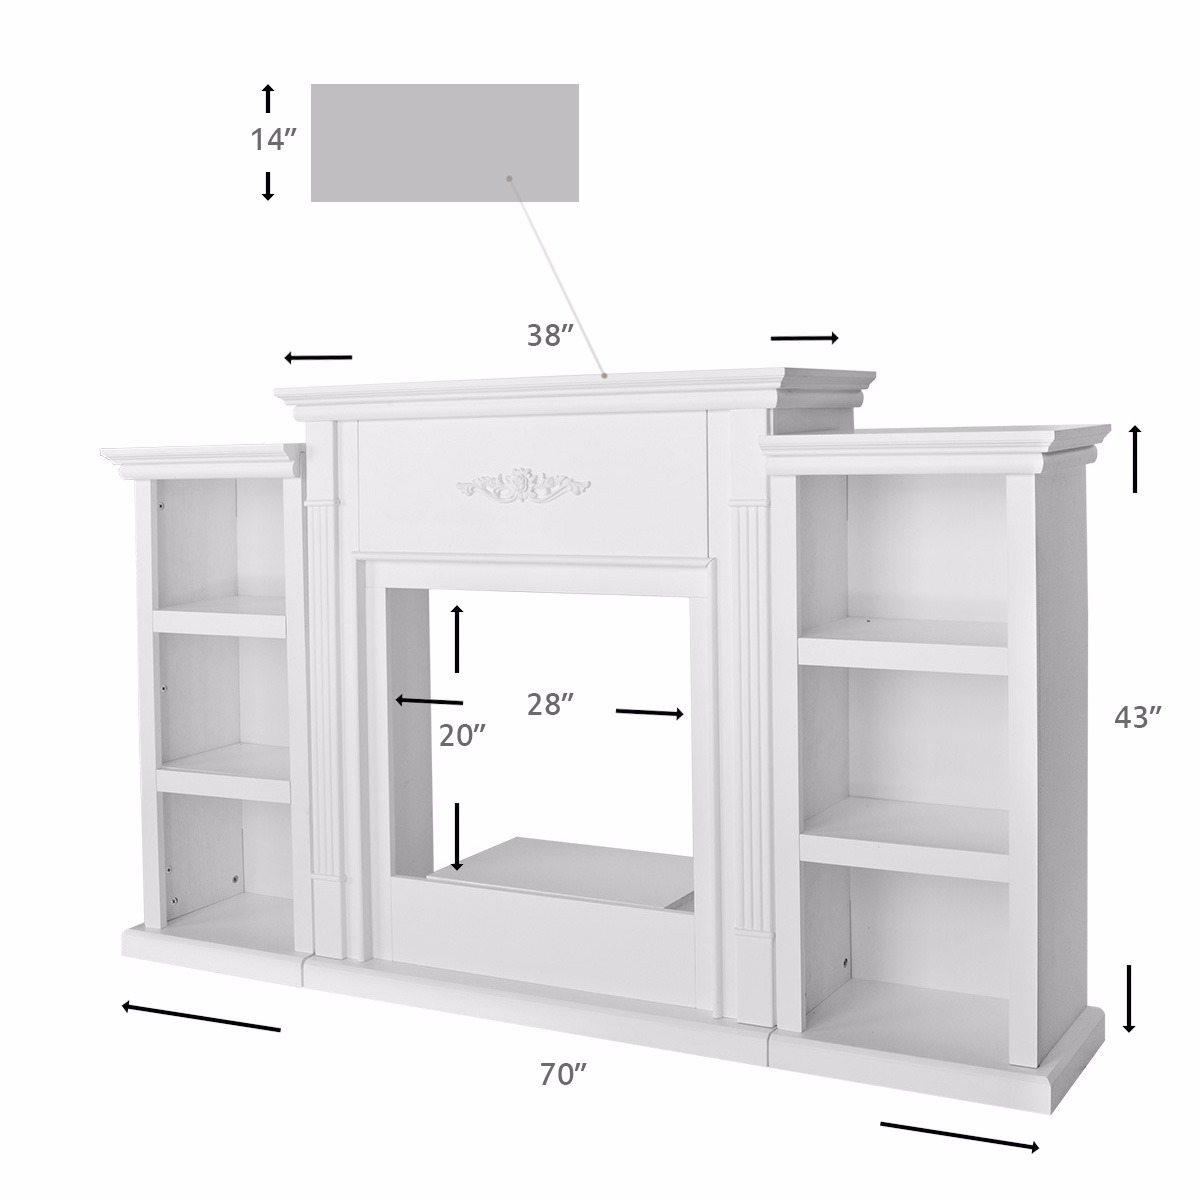 Tennyson Bookcase Electric Fireplace White Electric Fireplace With Bookcase Best Interior Furniture